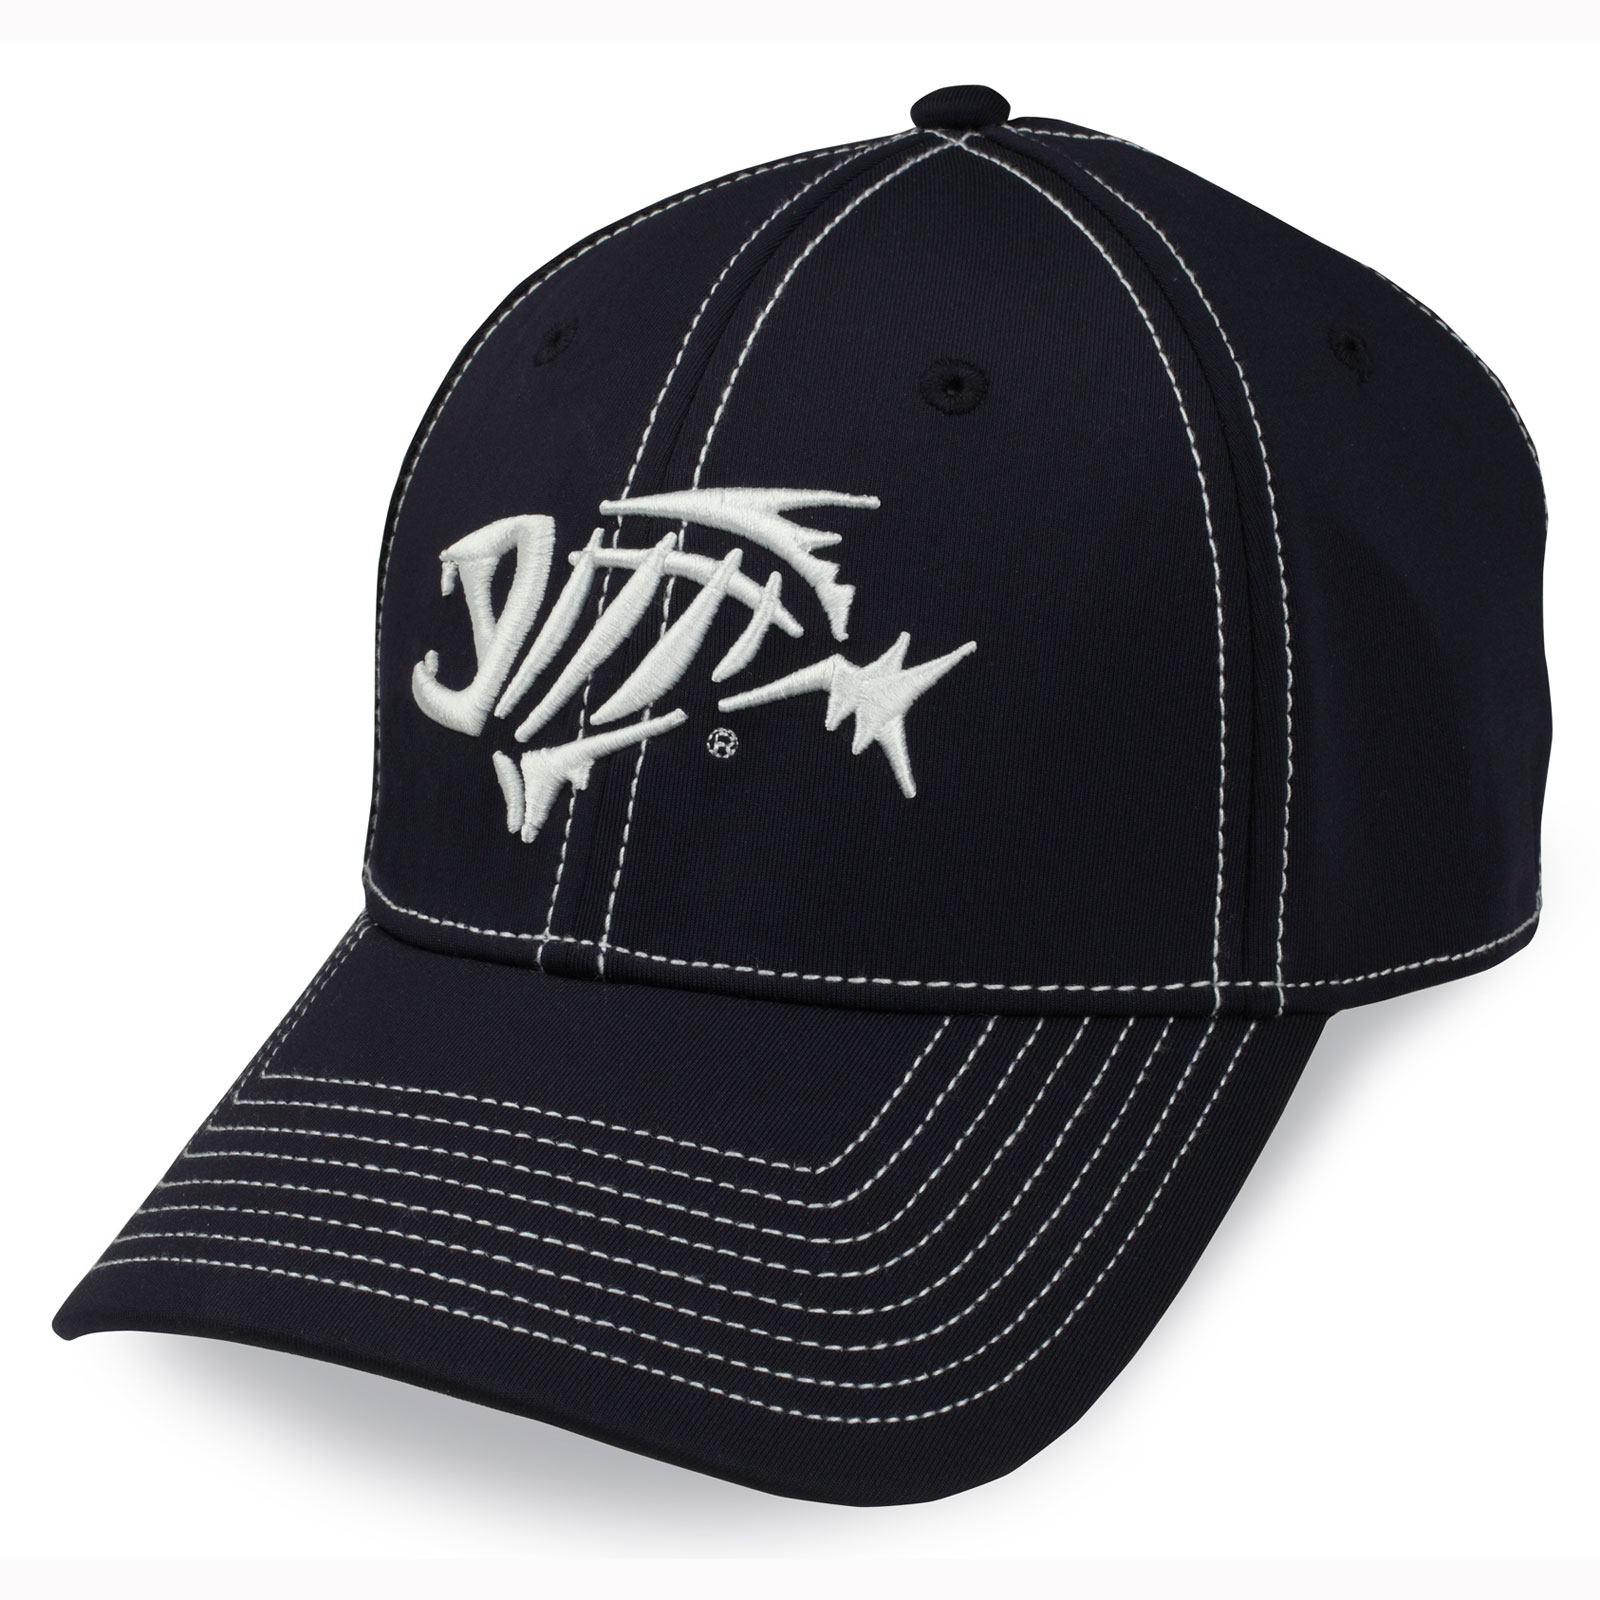 G Loomis A Flex Cap Moisture Wicking Polyester Fly Fishing